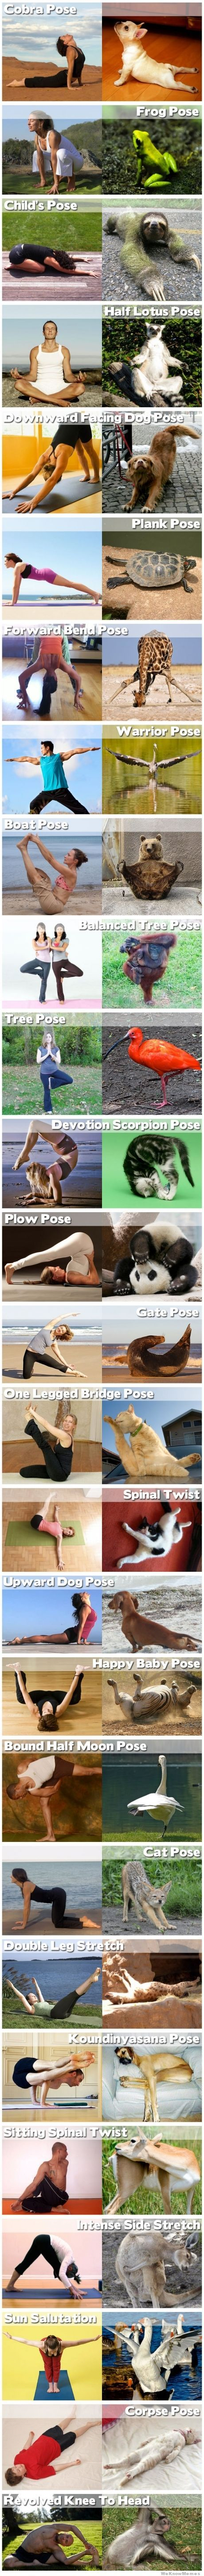 animals-doing-yoga-poses-if they can - I can!!